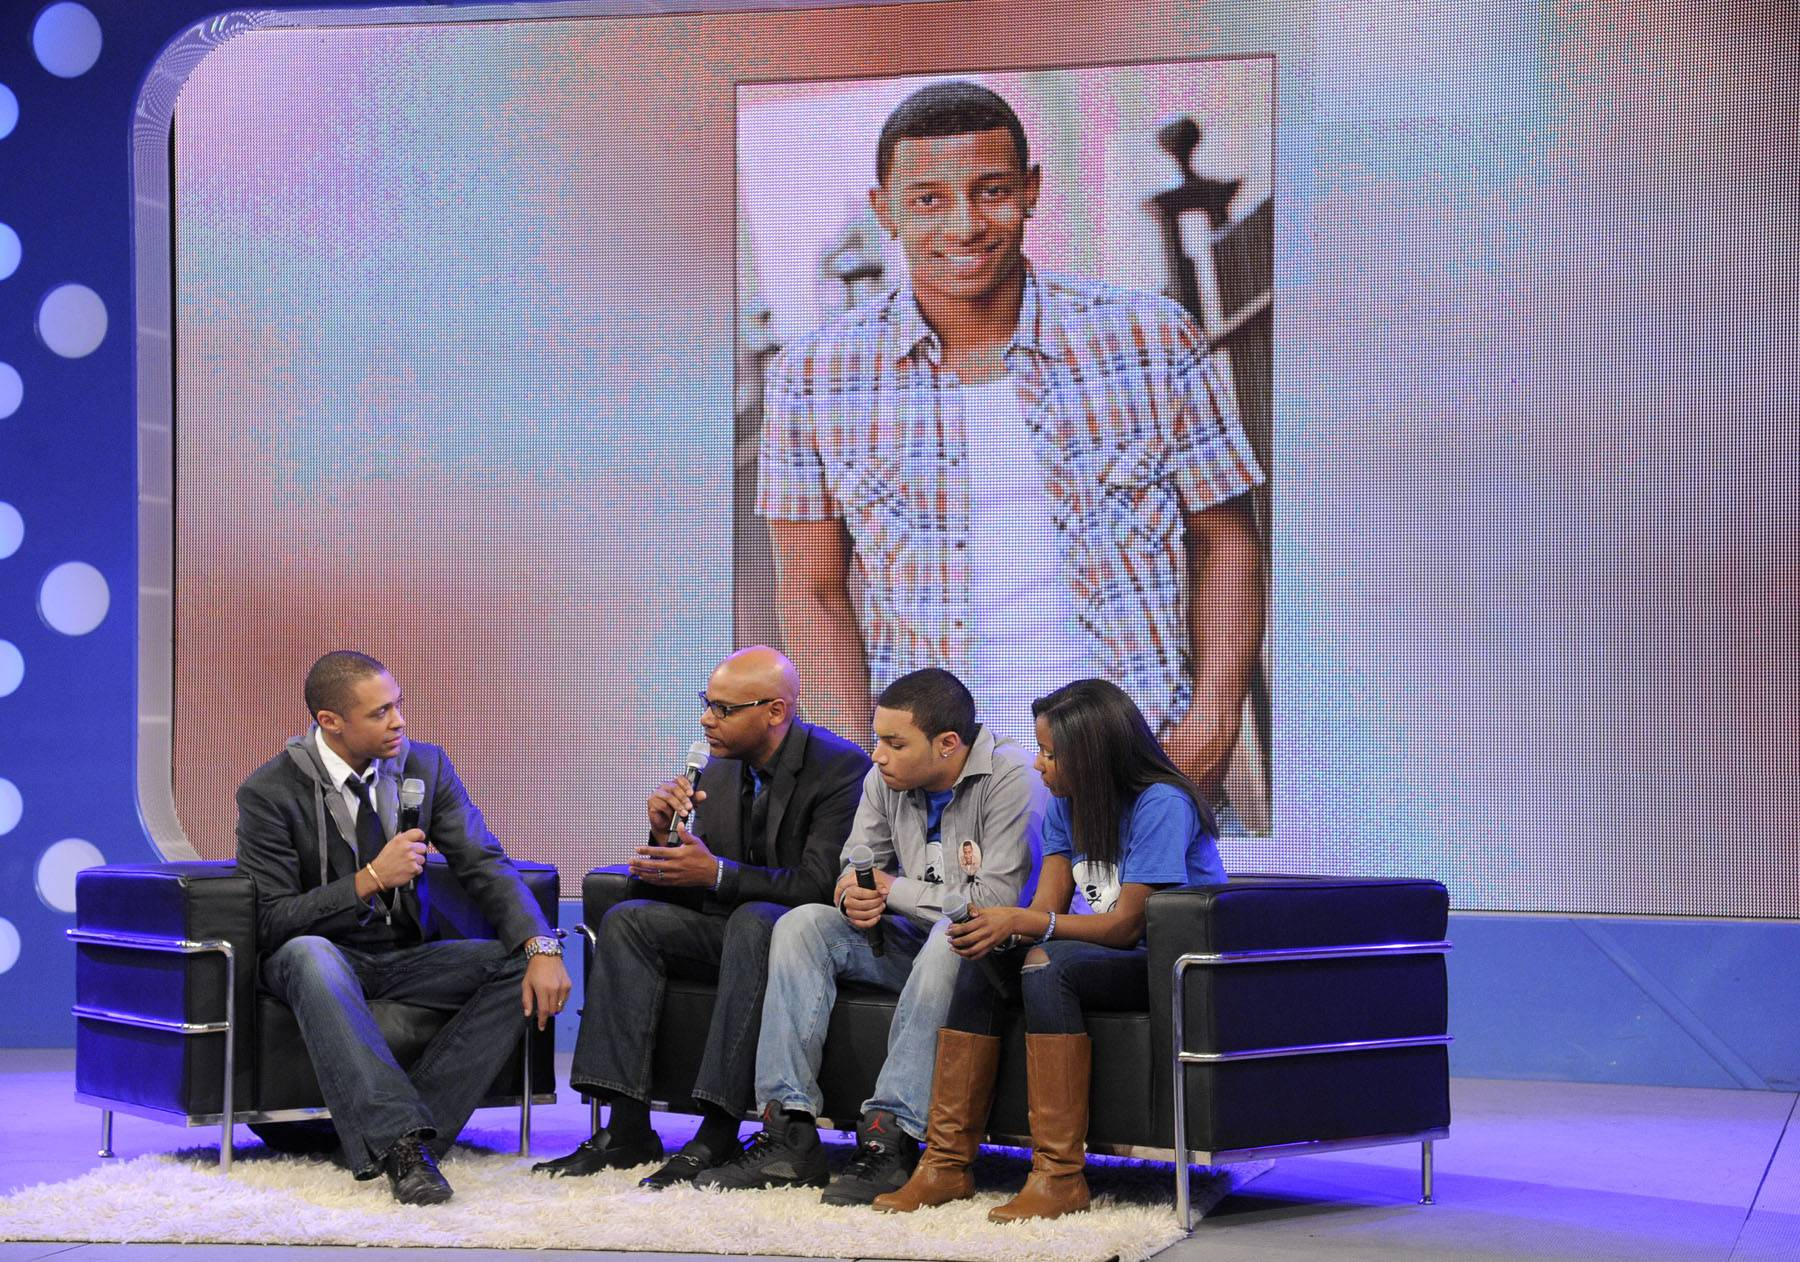 TJ Holmes Speaks with the Family of DJ Henry - DJ Henry?s father Danroy Henry Sr. tells the 106 audience to be great because they are a living breathing example of what success can be.(Photo: John Ricard/BET)